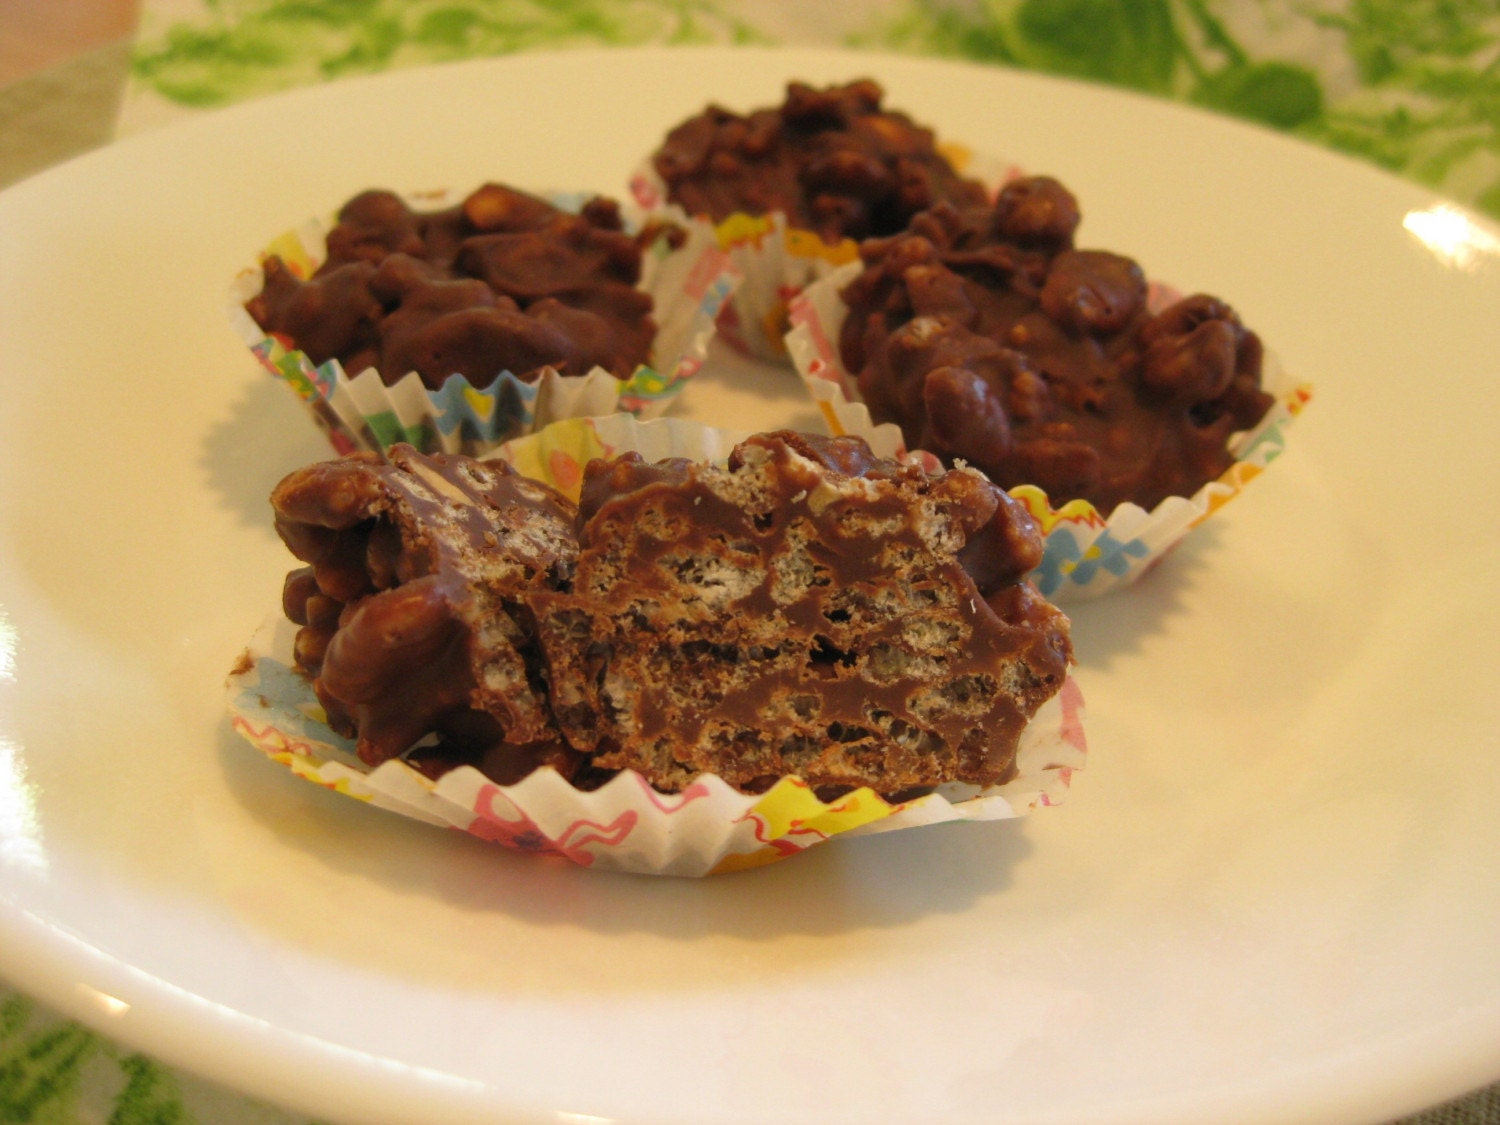 Chocolate Candy Rice Crispy Treat Peanut Butter by momscookies